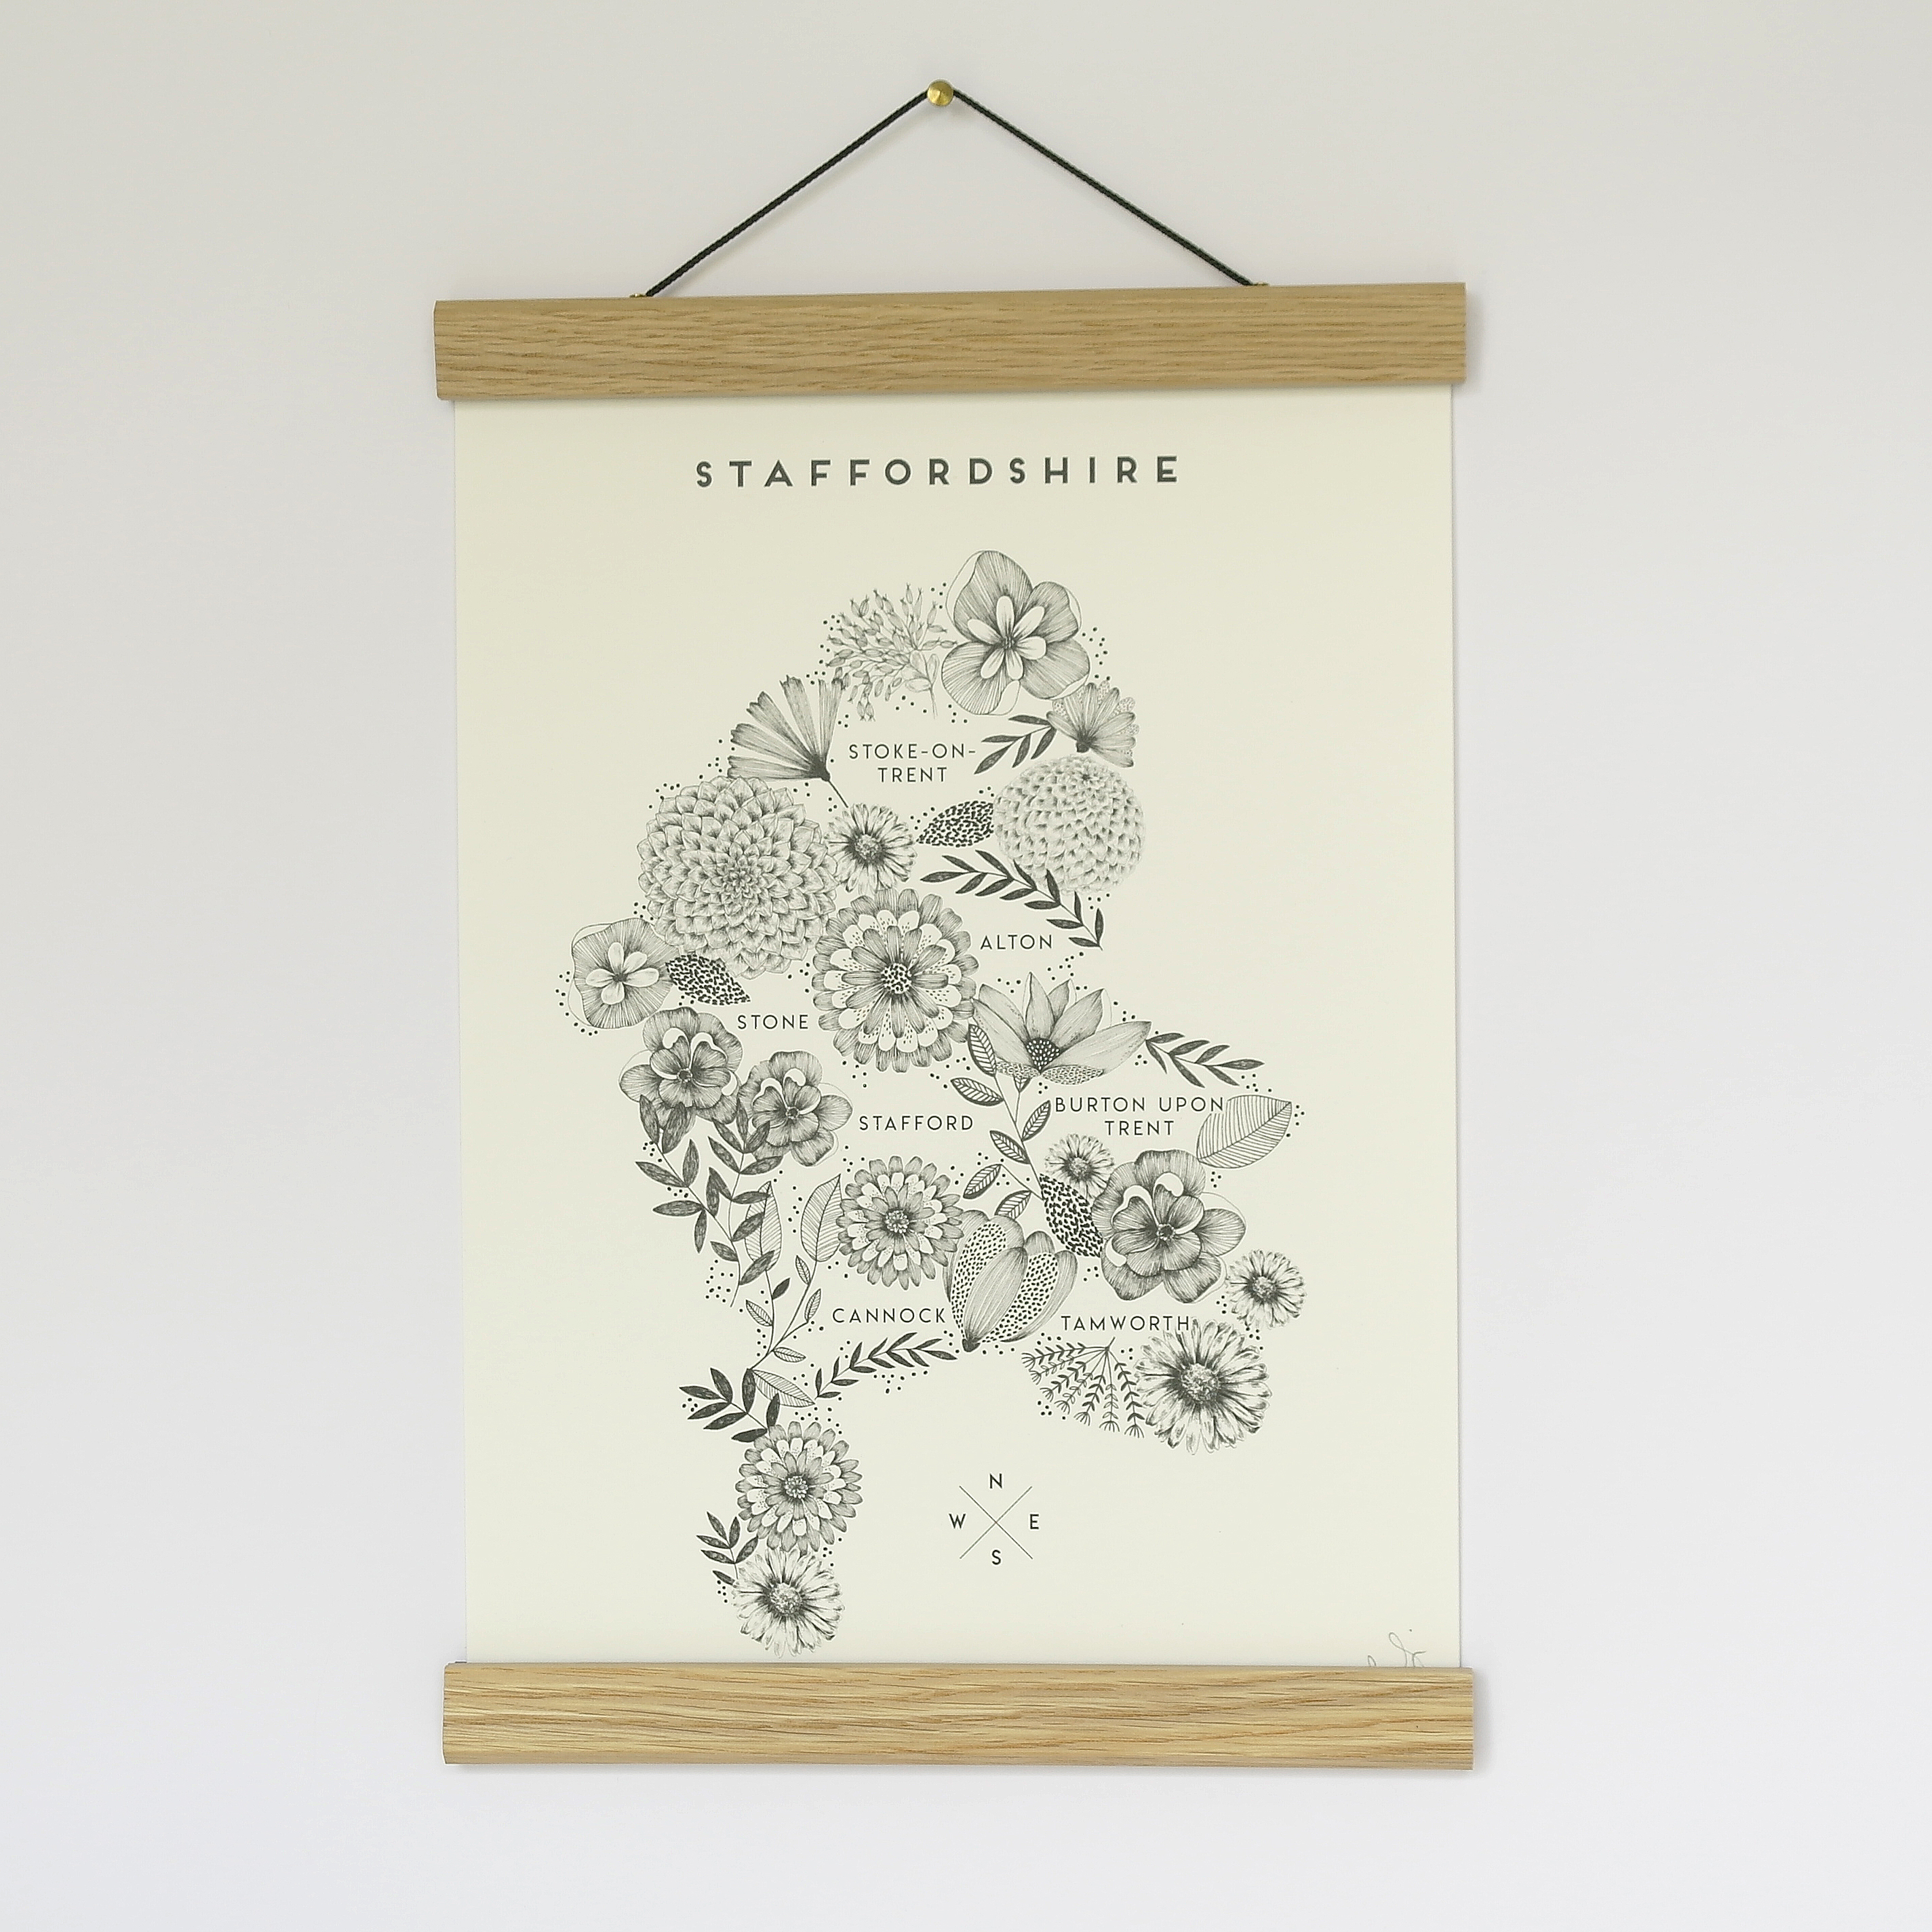 A4 Print Floral Map Staffordshire